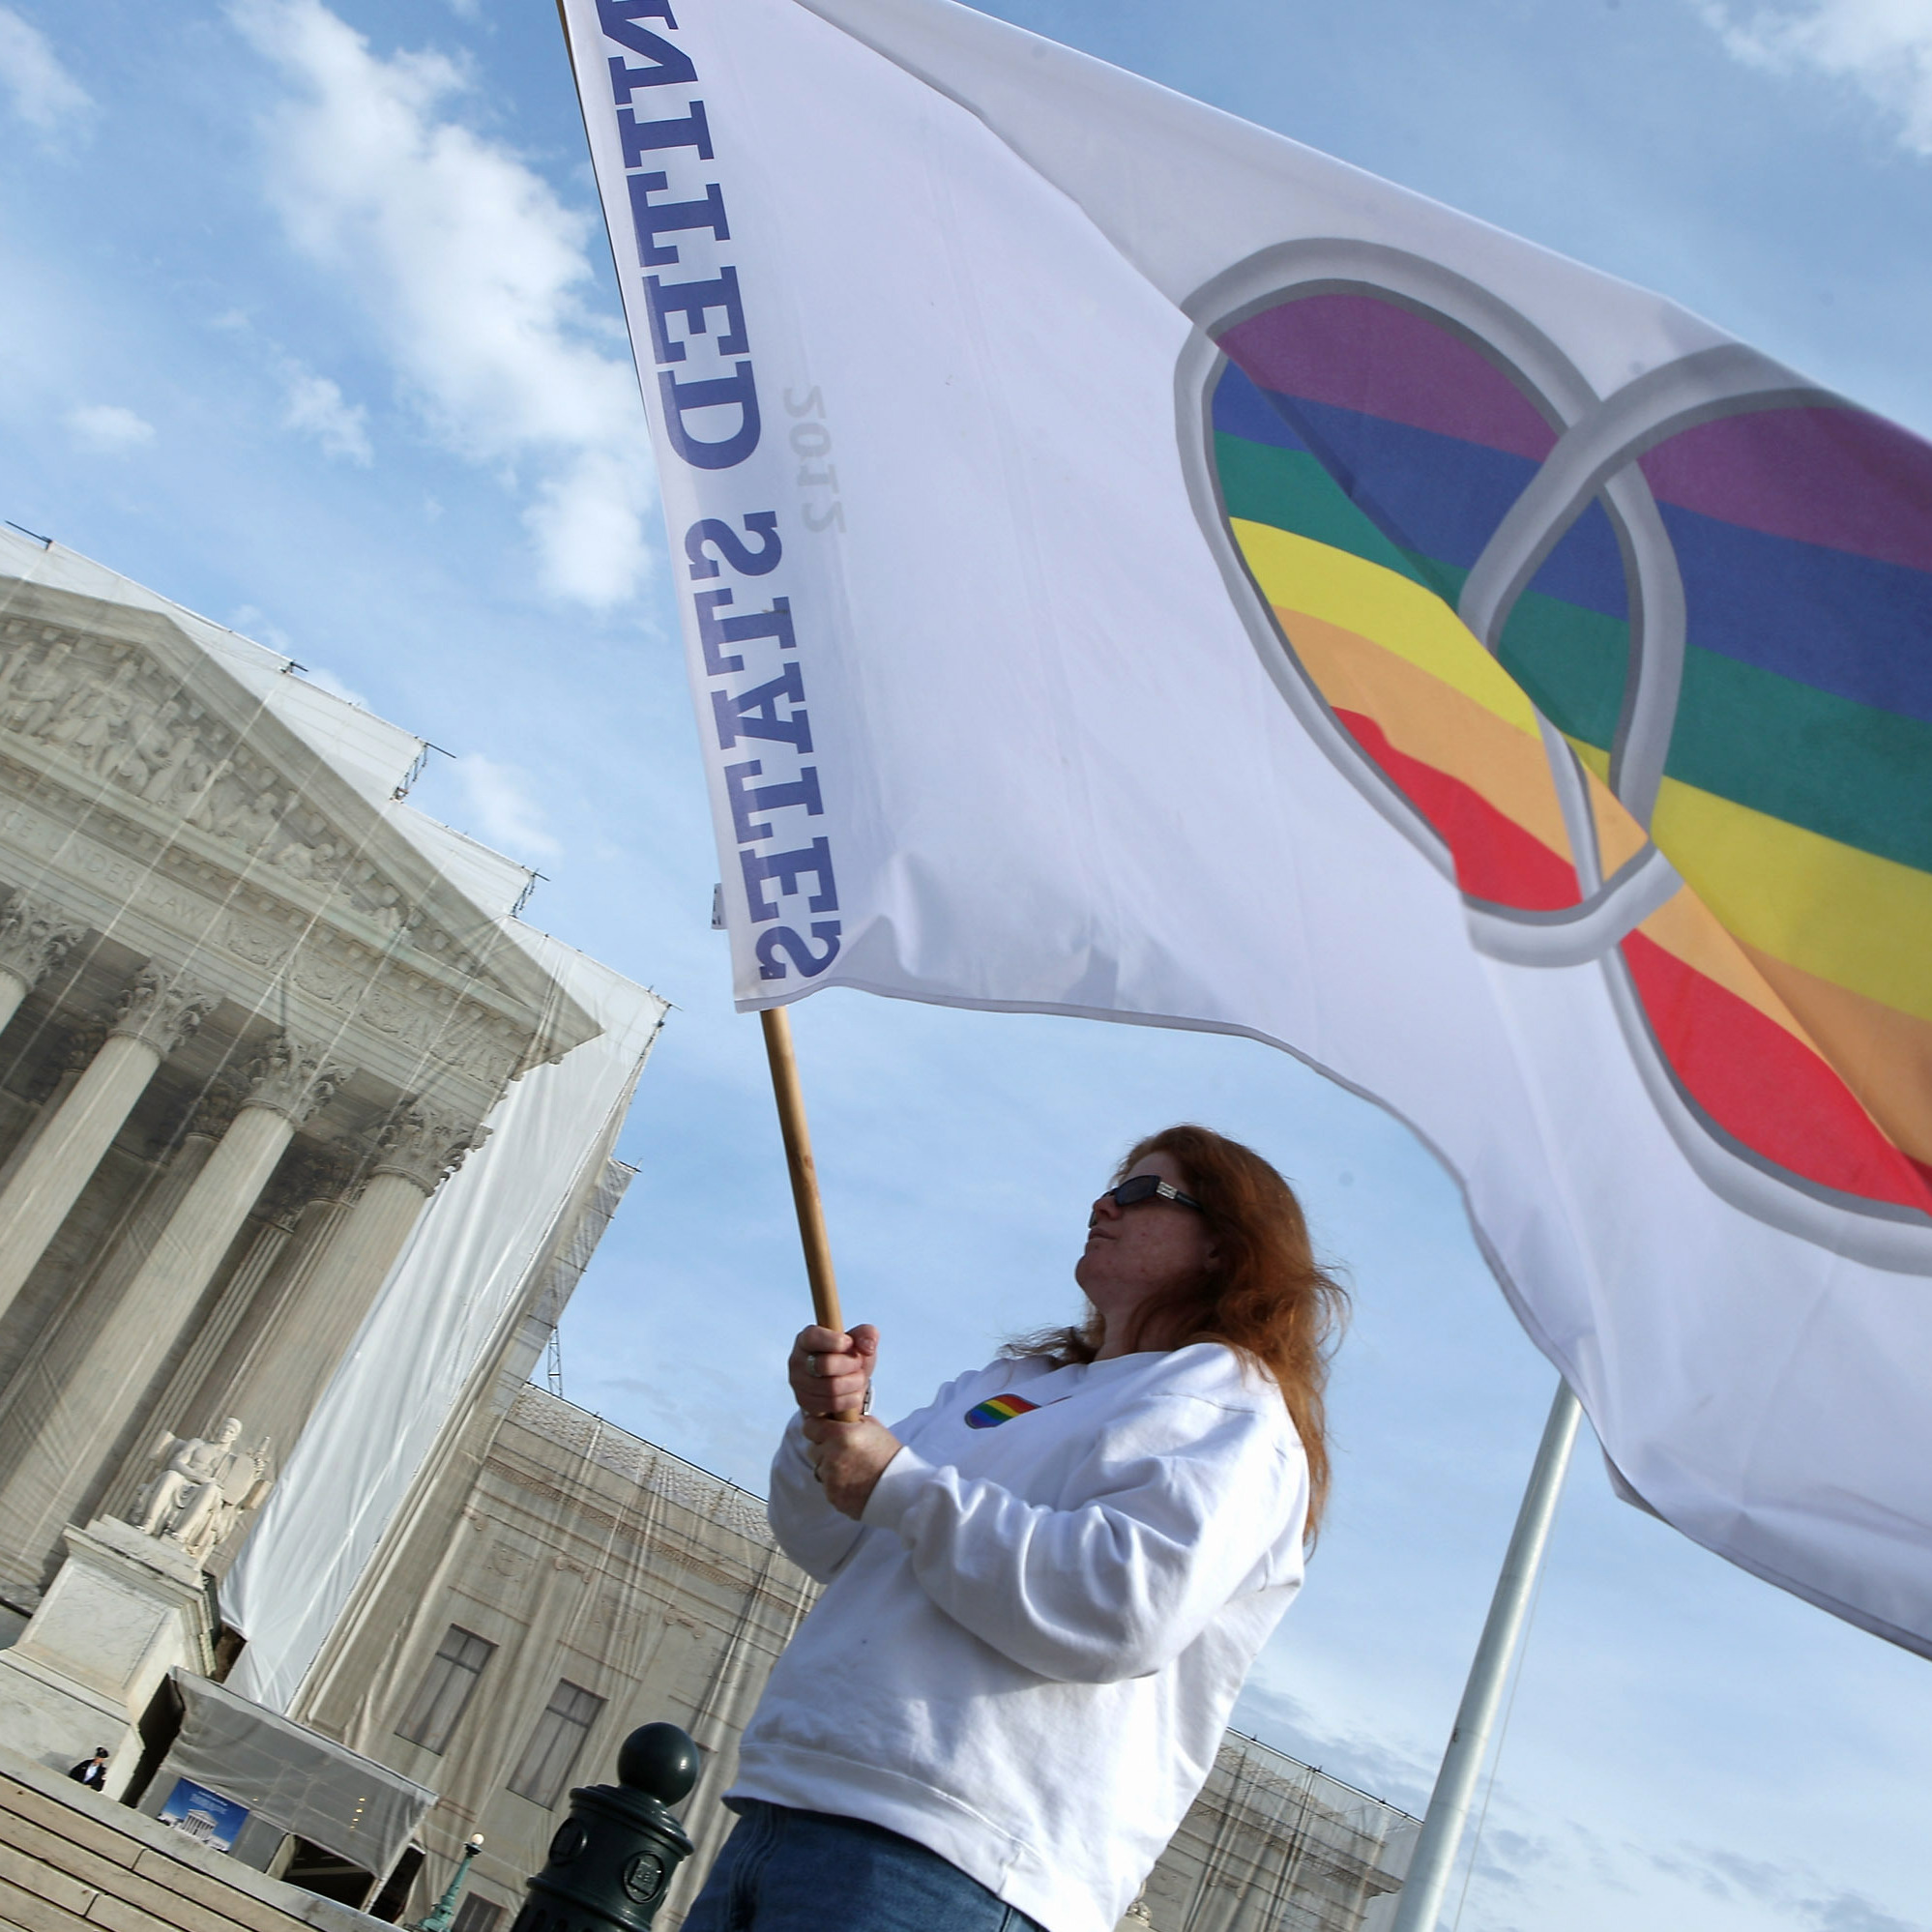 Kat McGuckin of Oaklyn, N.J., holds a gay pride flag while standing in front of the U.S. Supreme Court on Nov. 30.